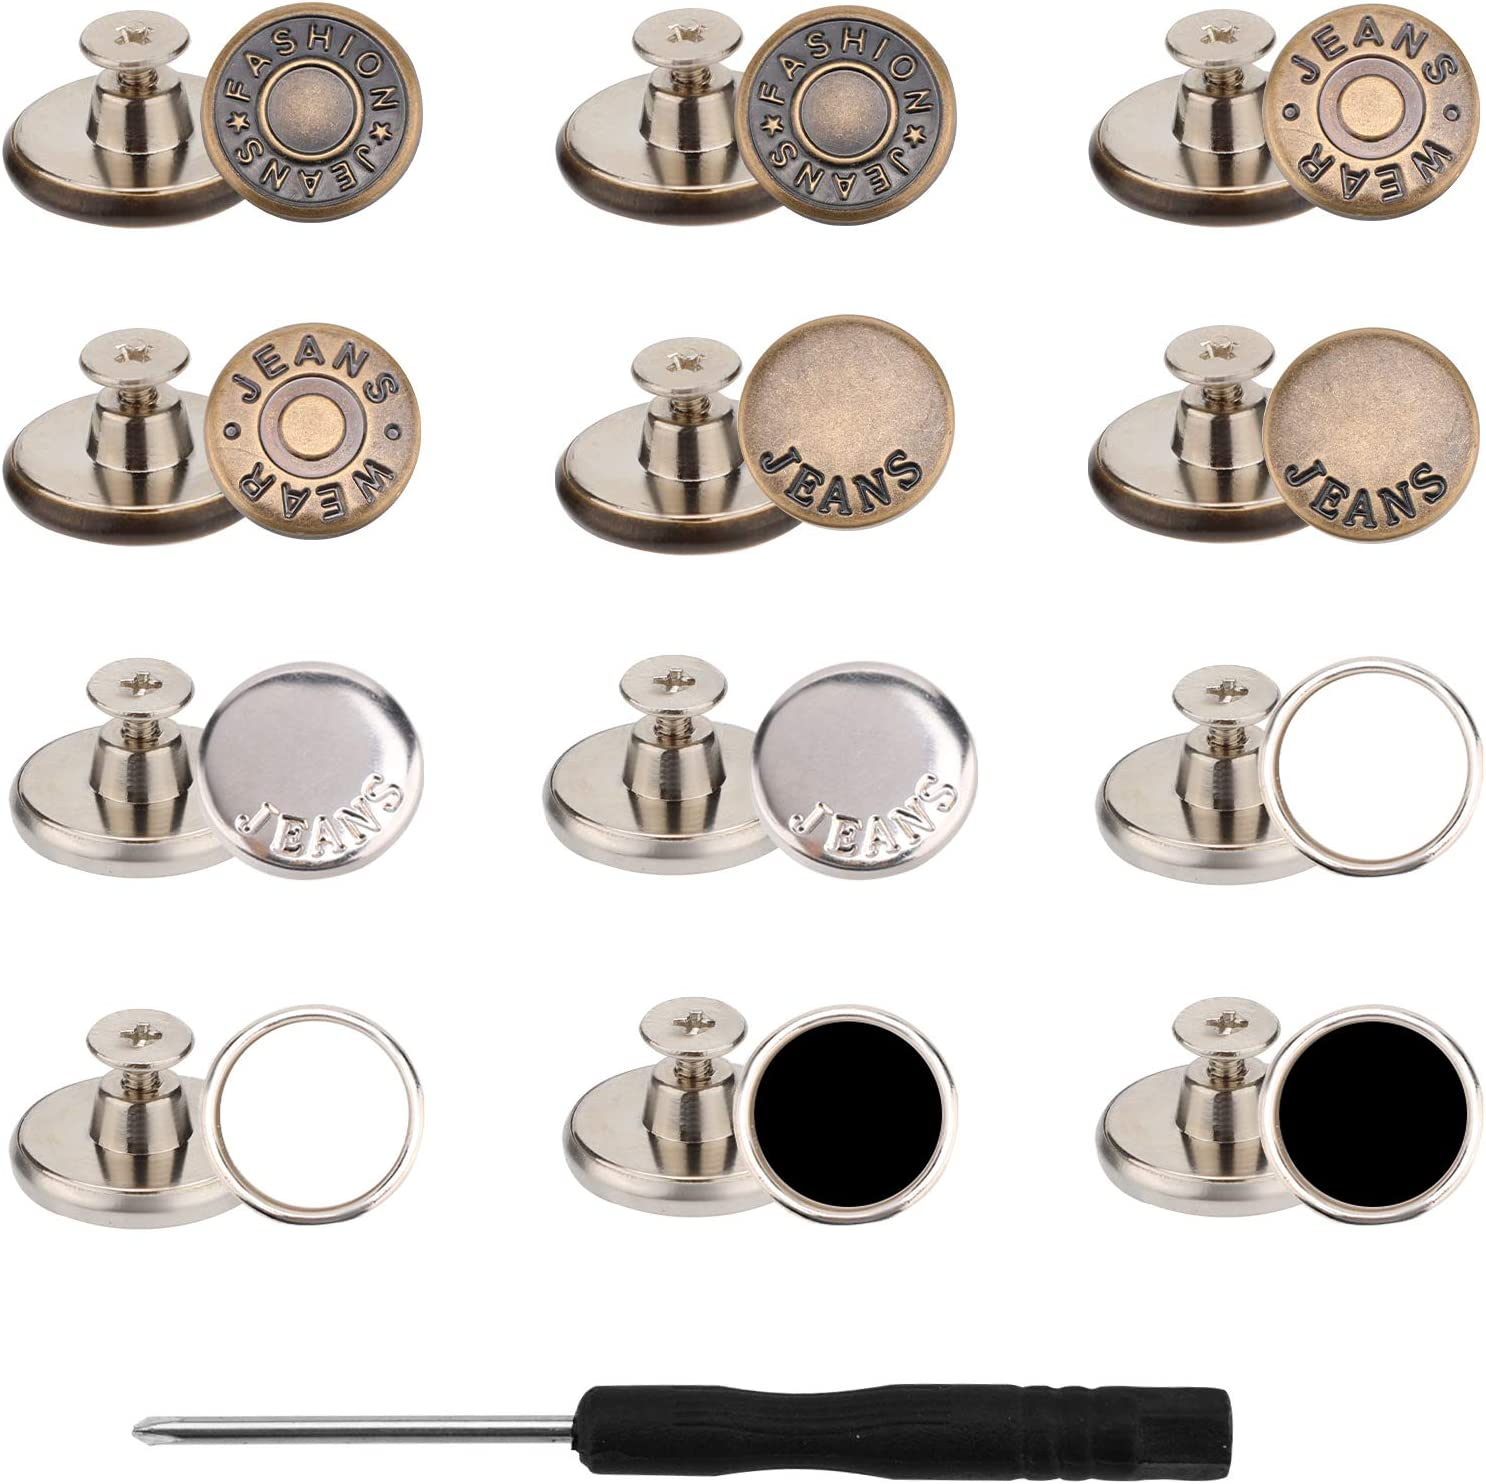 TOYMIS 12 Sets Jeans Buttons Brass Button Snap Metal Buttons Kit with Rivets and Screwdriver for Cowboy Clothing Jackets Pants Bags